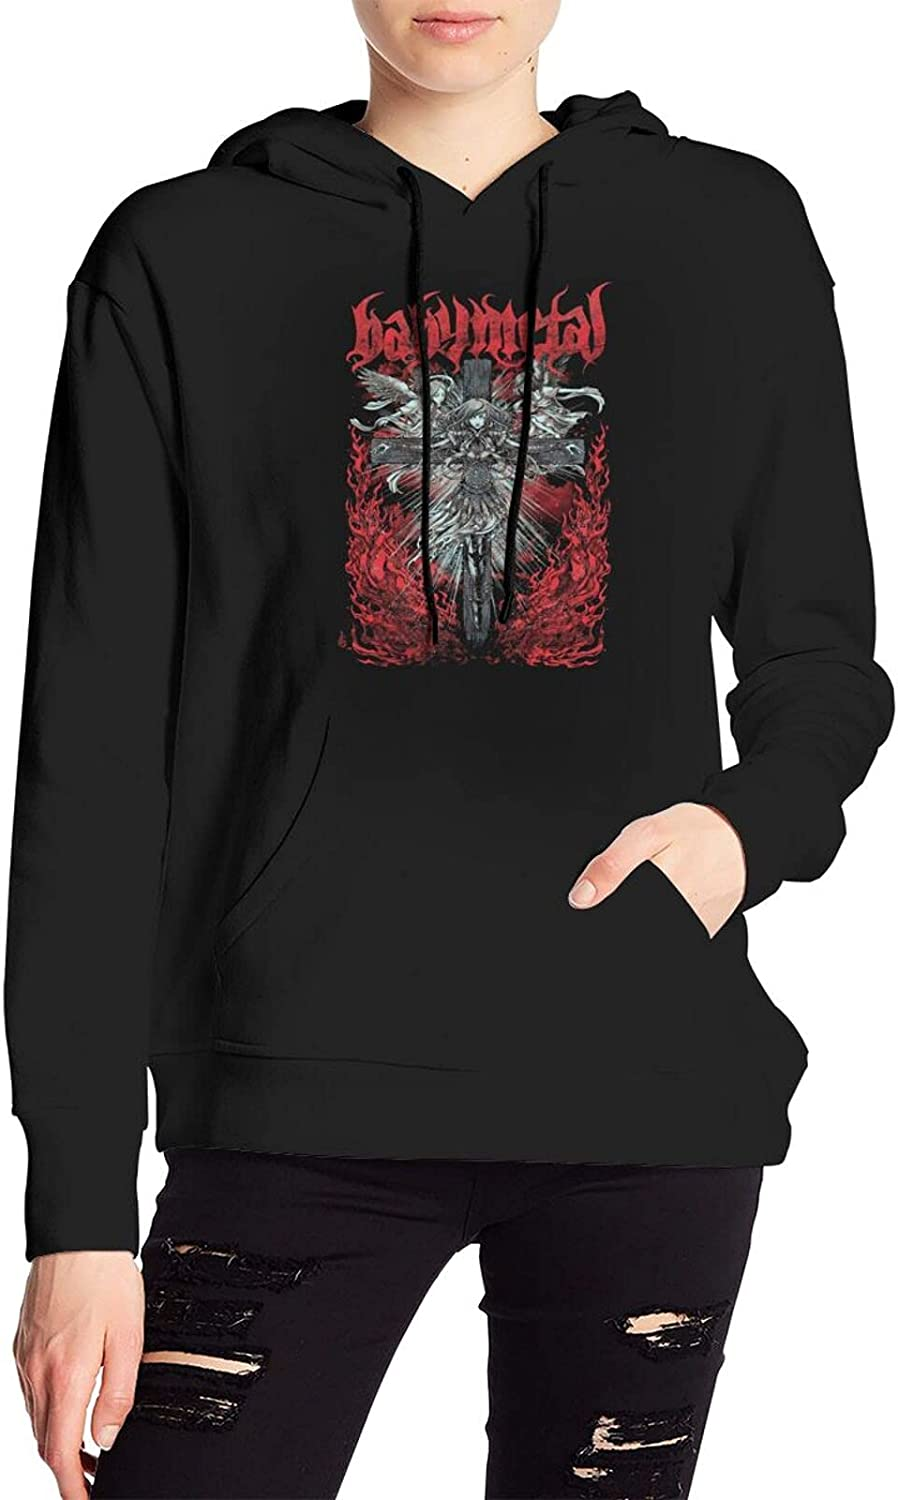 Babymetal Sweater Novelty Hoody With Pocket For Men'S Women